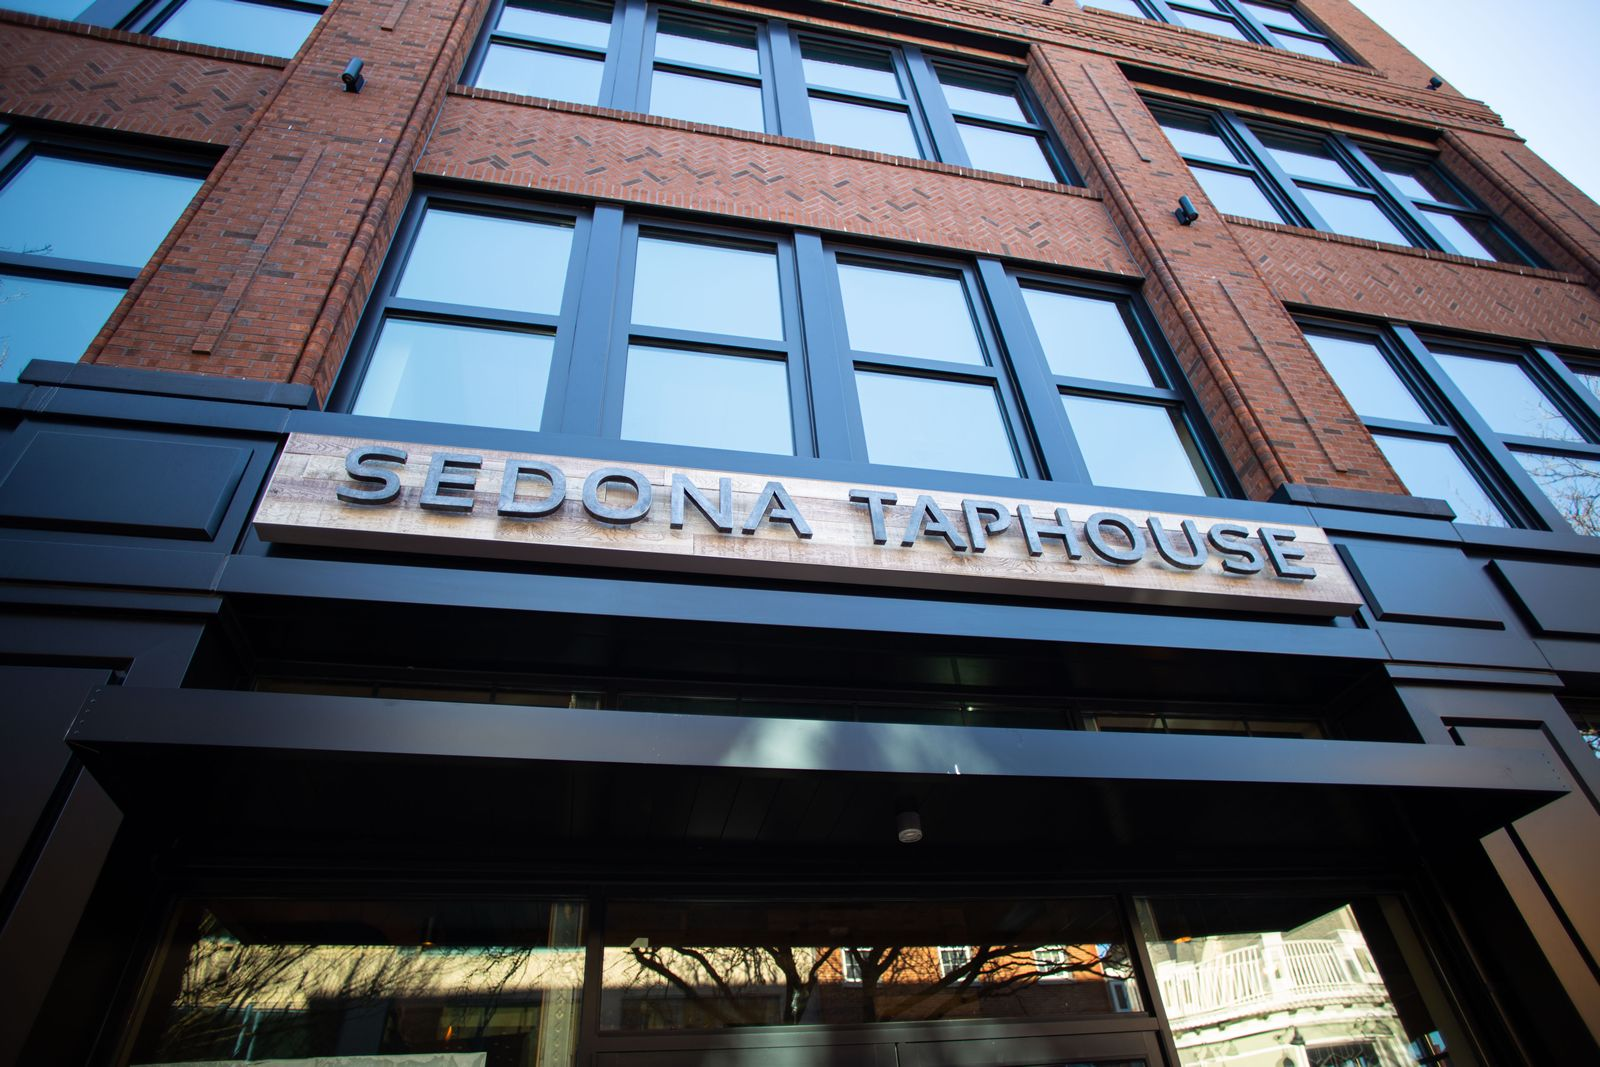 Sedona Taphouse Opens 15th Store Location in West Chester, PA